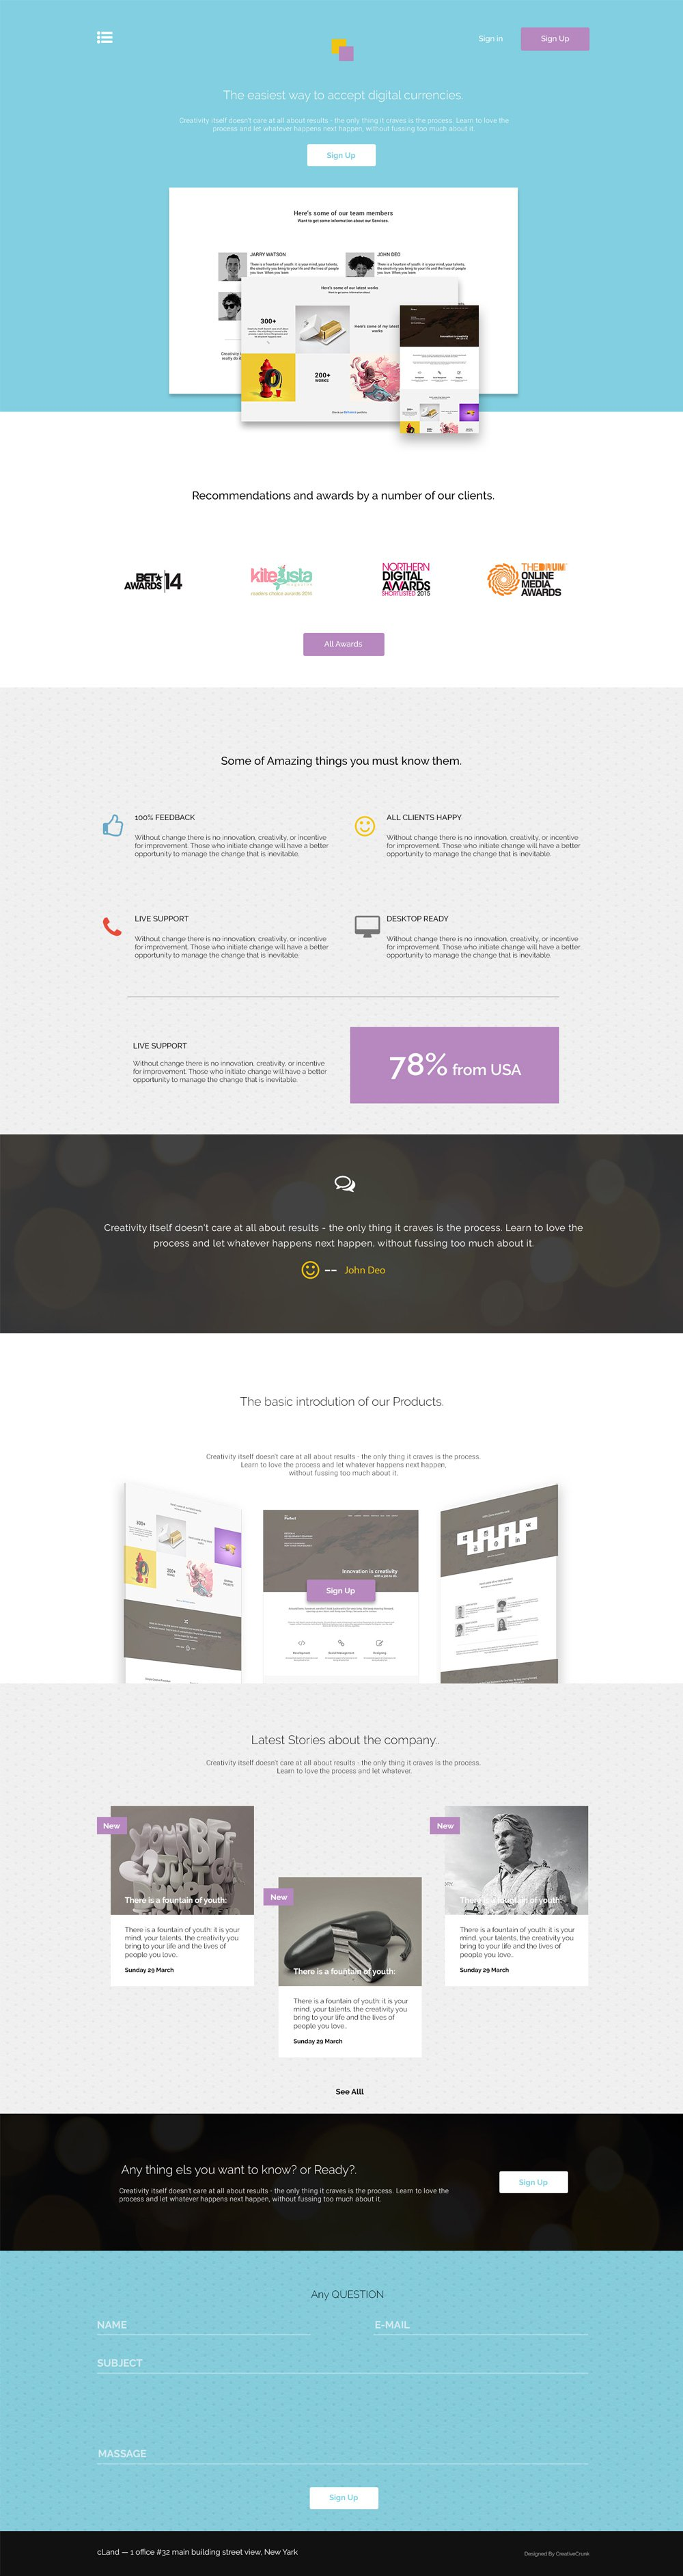 CLand – Landing Page Template PSD | Free Web Templates | Pinterest